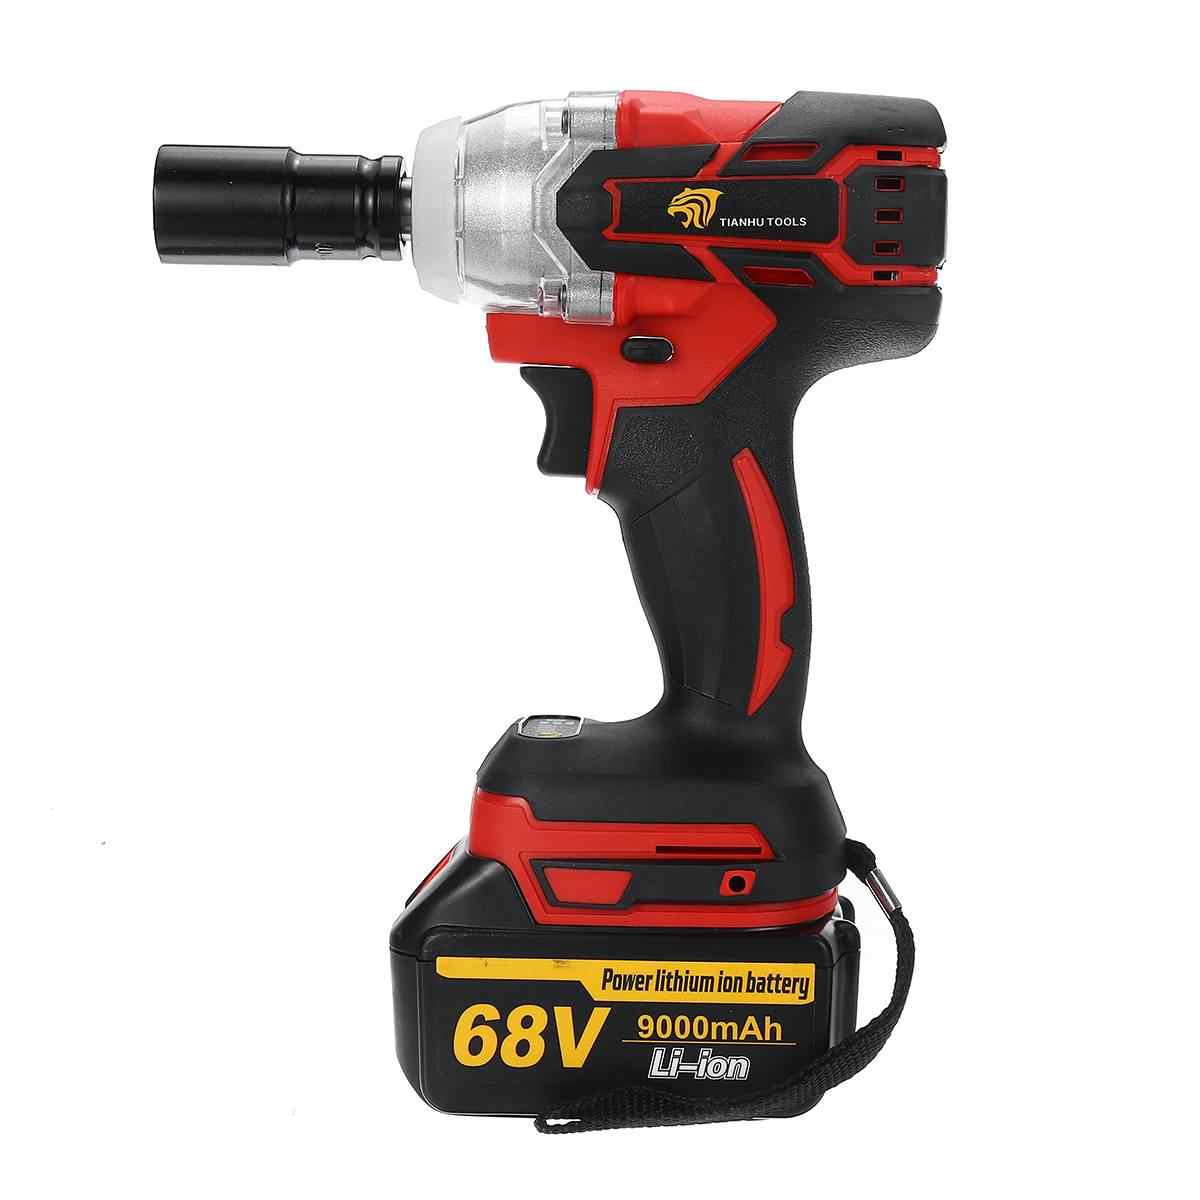 68V 9000mAh Cordless Impact Electric Wrench Brushless Socket Wrench Hand Drill Installation 520N.M Power Tools For Car/SUV Wheel